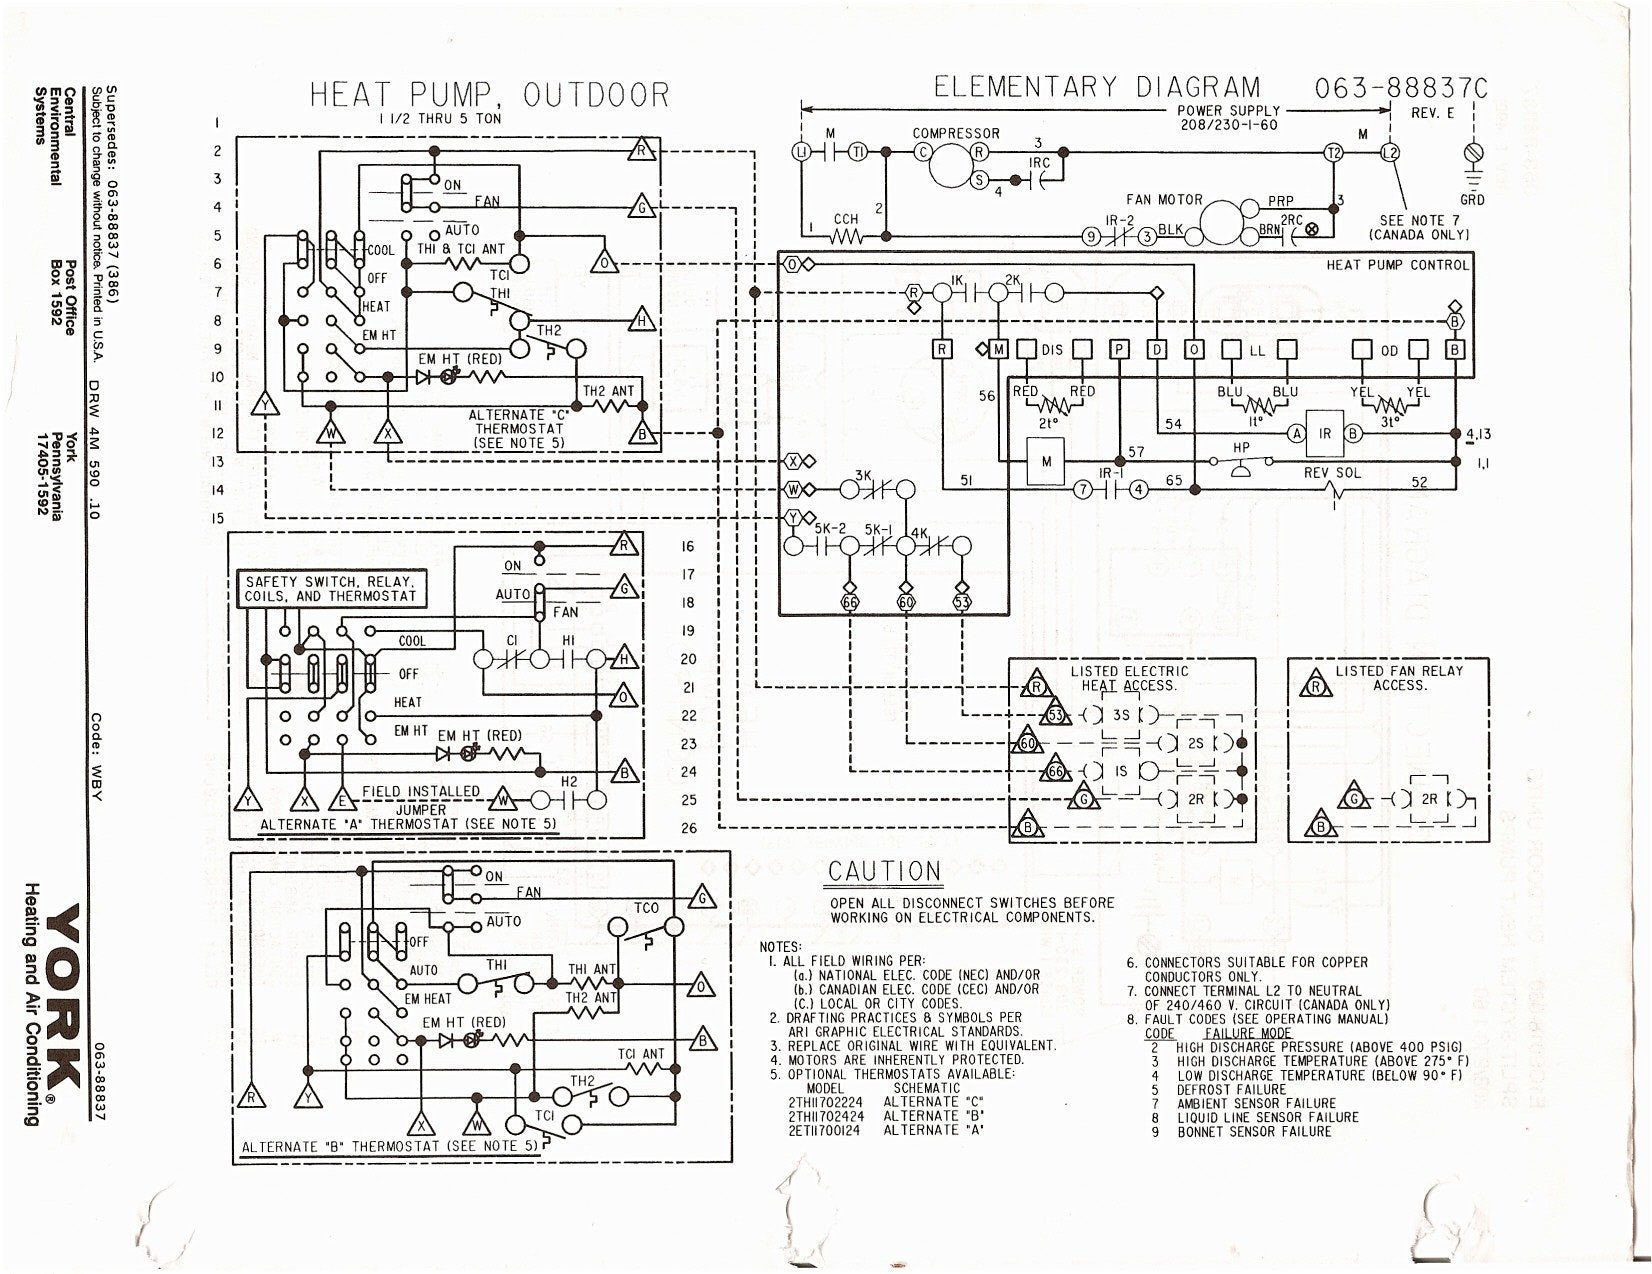 goodman aruf air handler wiring diagram Collection-Goodman Aruf Air Handler Wiring Diagram Luxury Bard Heat Pump Wiring Diagram Wiring Diagrams Schematics 3-b